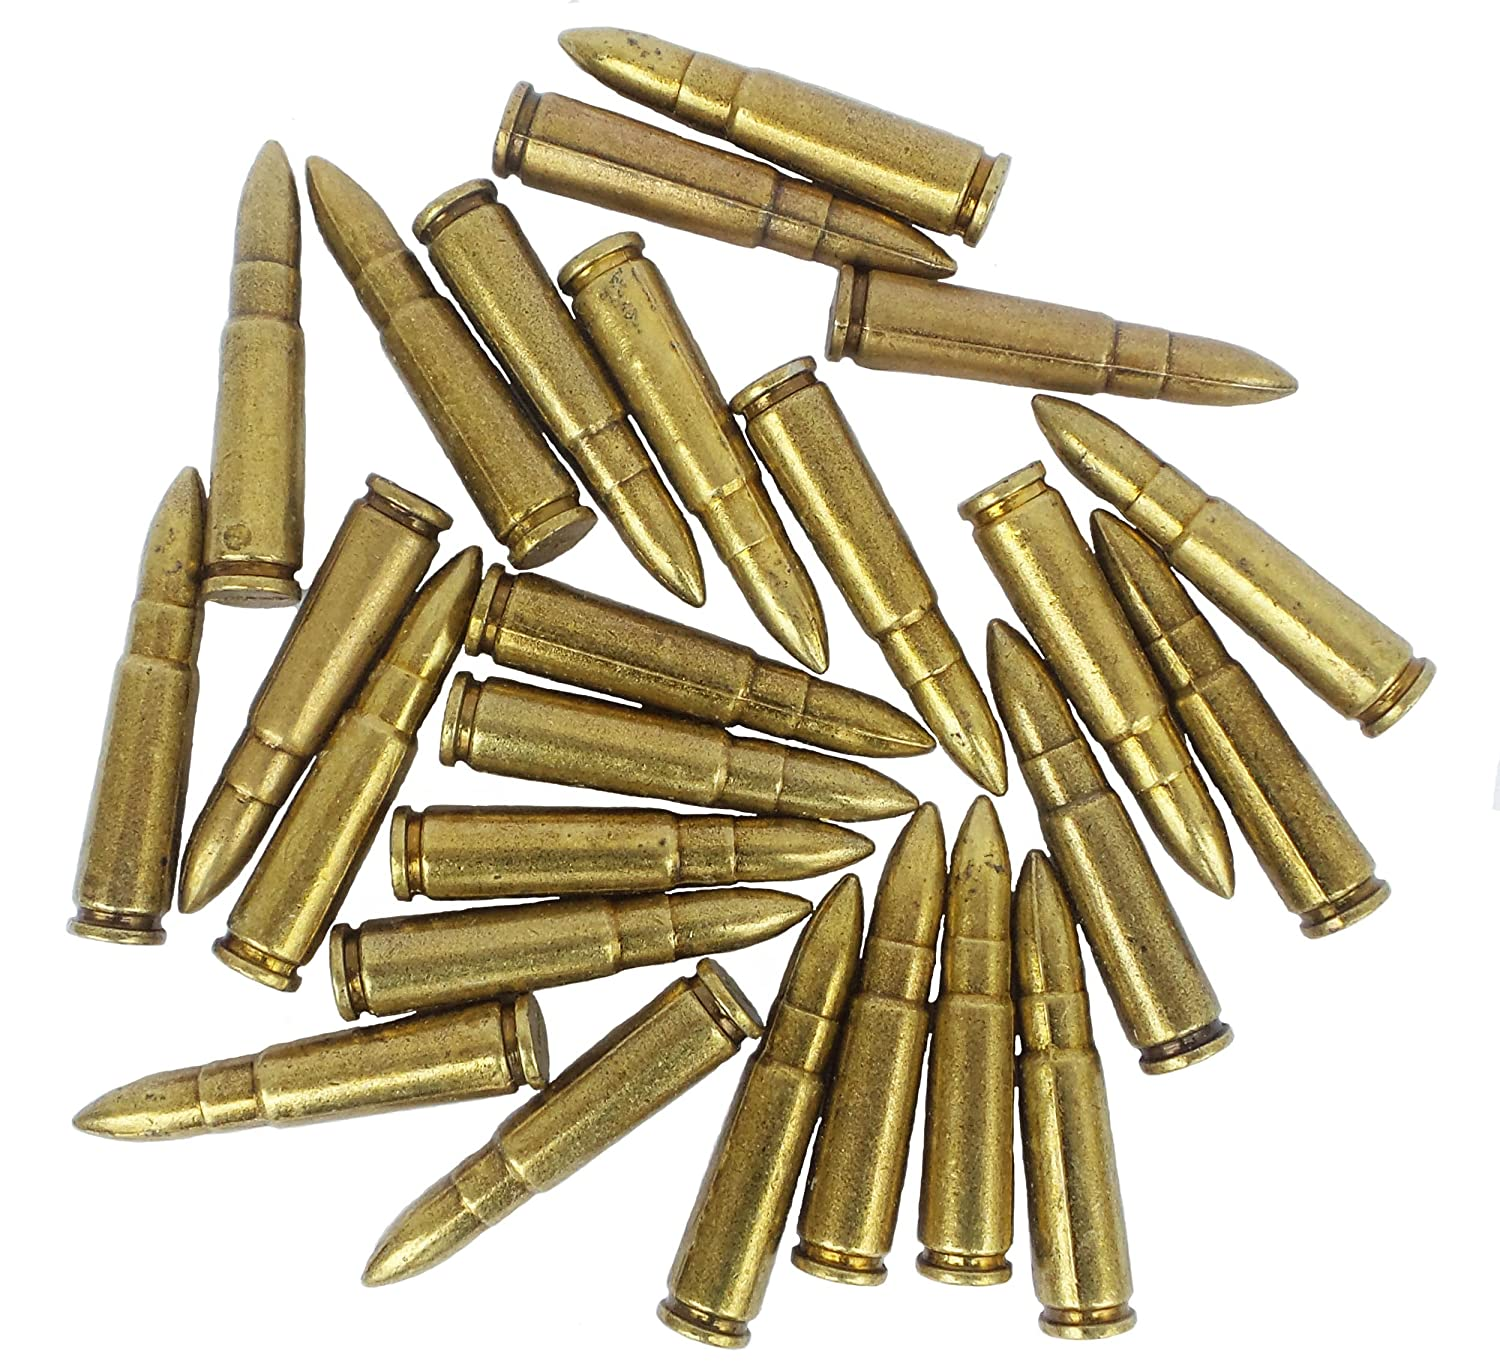 Denix 25 Dummy Rounds Solid Metal Display Pieces AK 47- Fits in 38/357 Cal  Loops